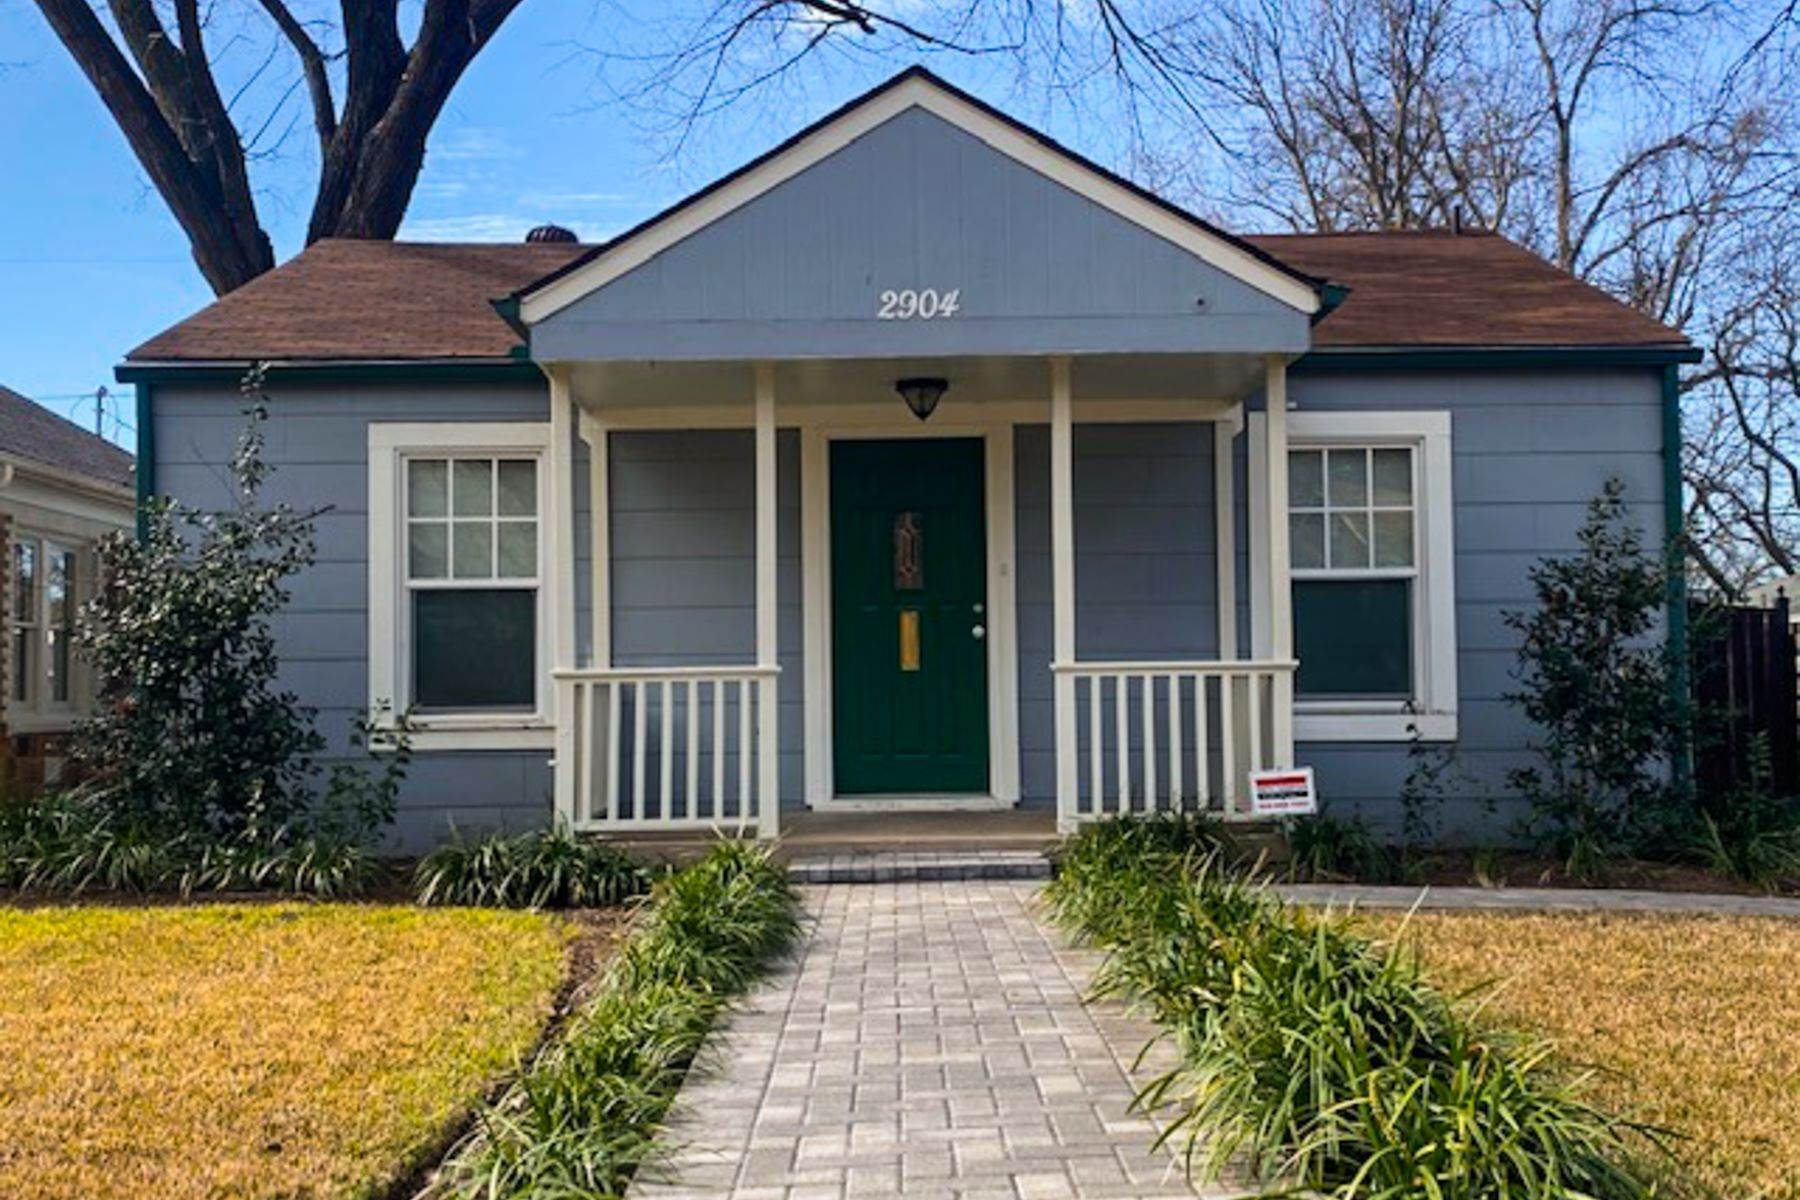 Single Family Homes for Sale at 2904 Willing Avenue, Fort Worth, TX, 76110 2904 Willing Avenue Fort Worth, Texas 76110 United States